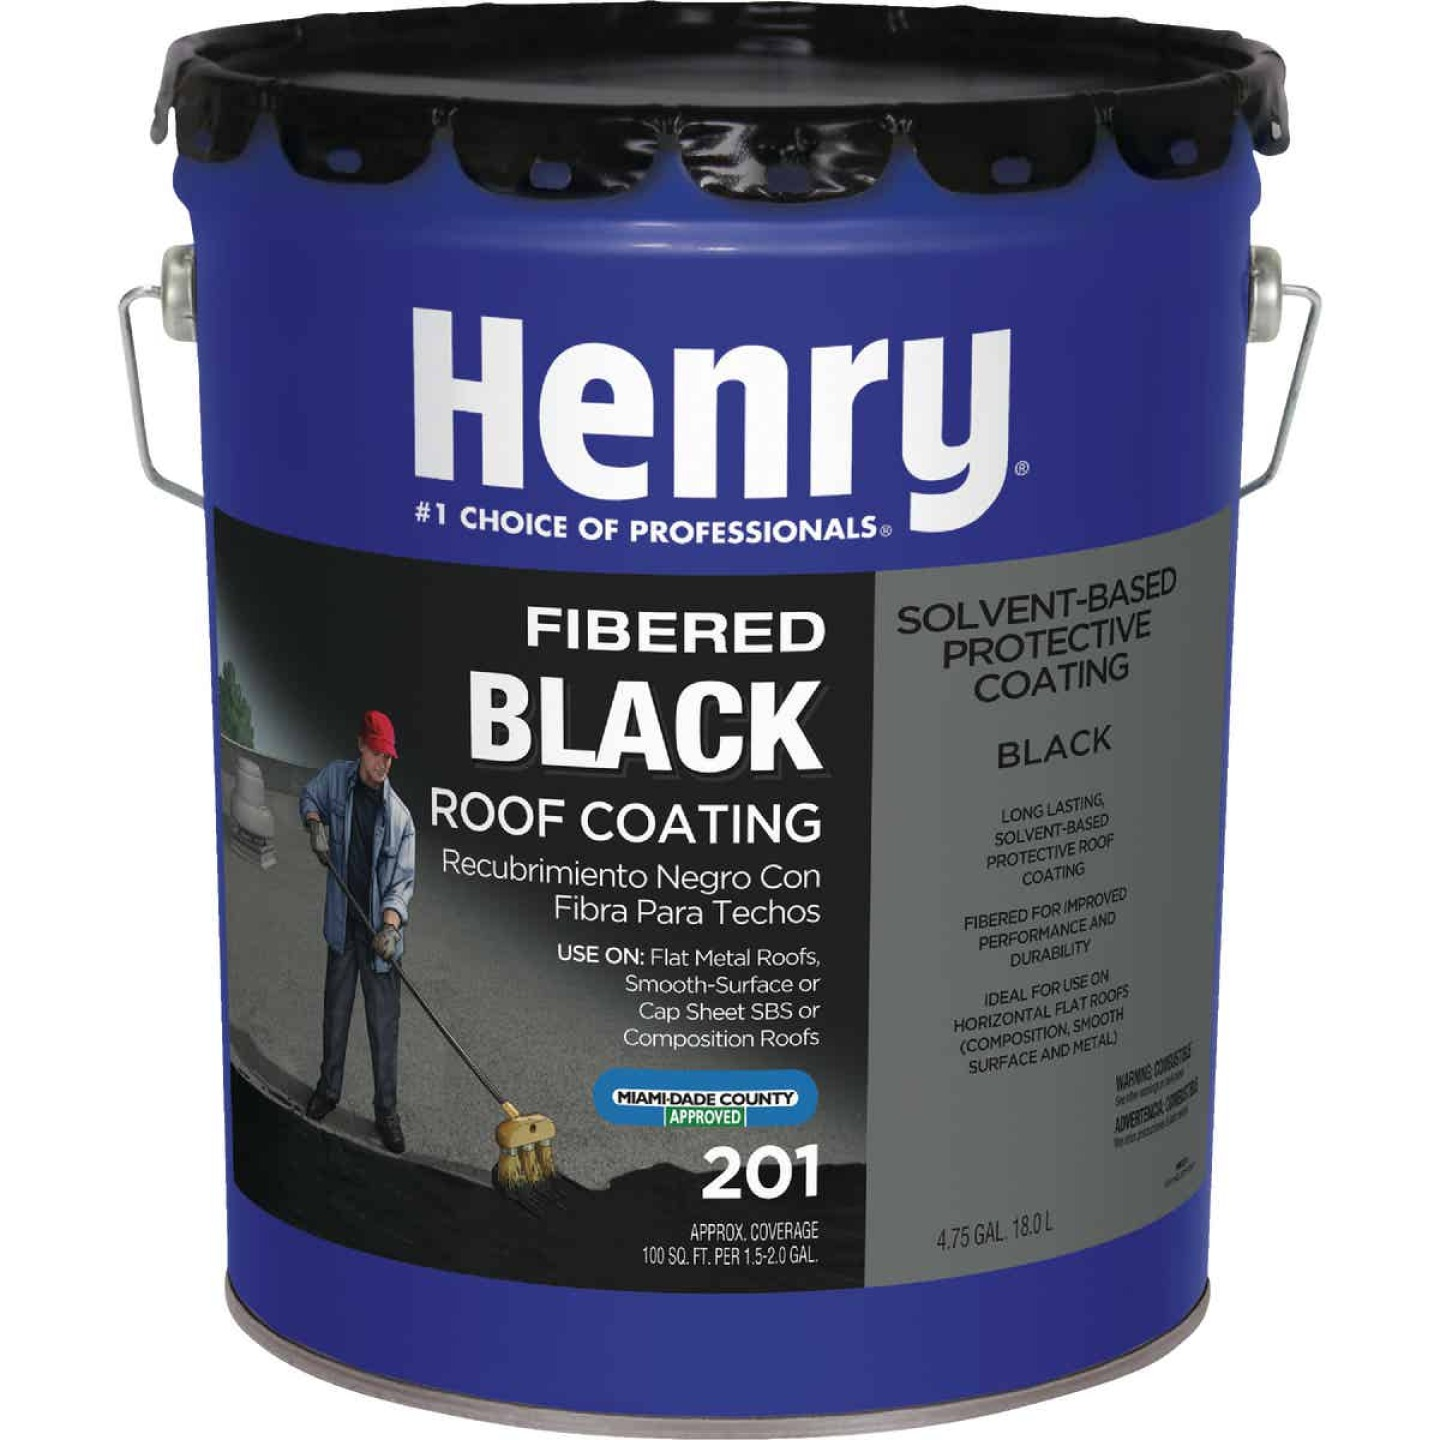 Henry 5 Gal. Fibered Asphalt Roof Coating Image 1